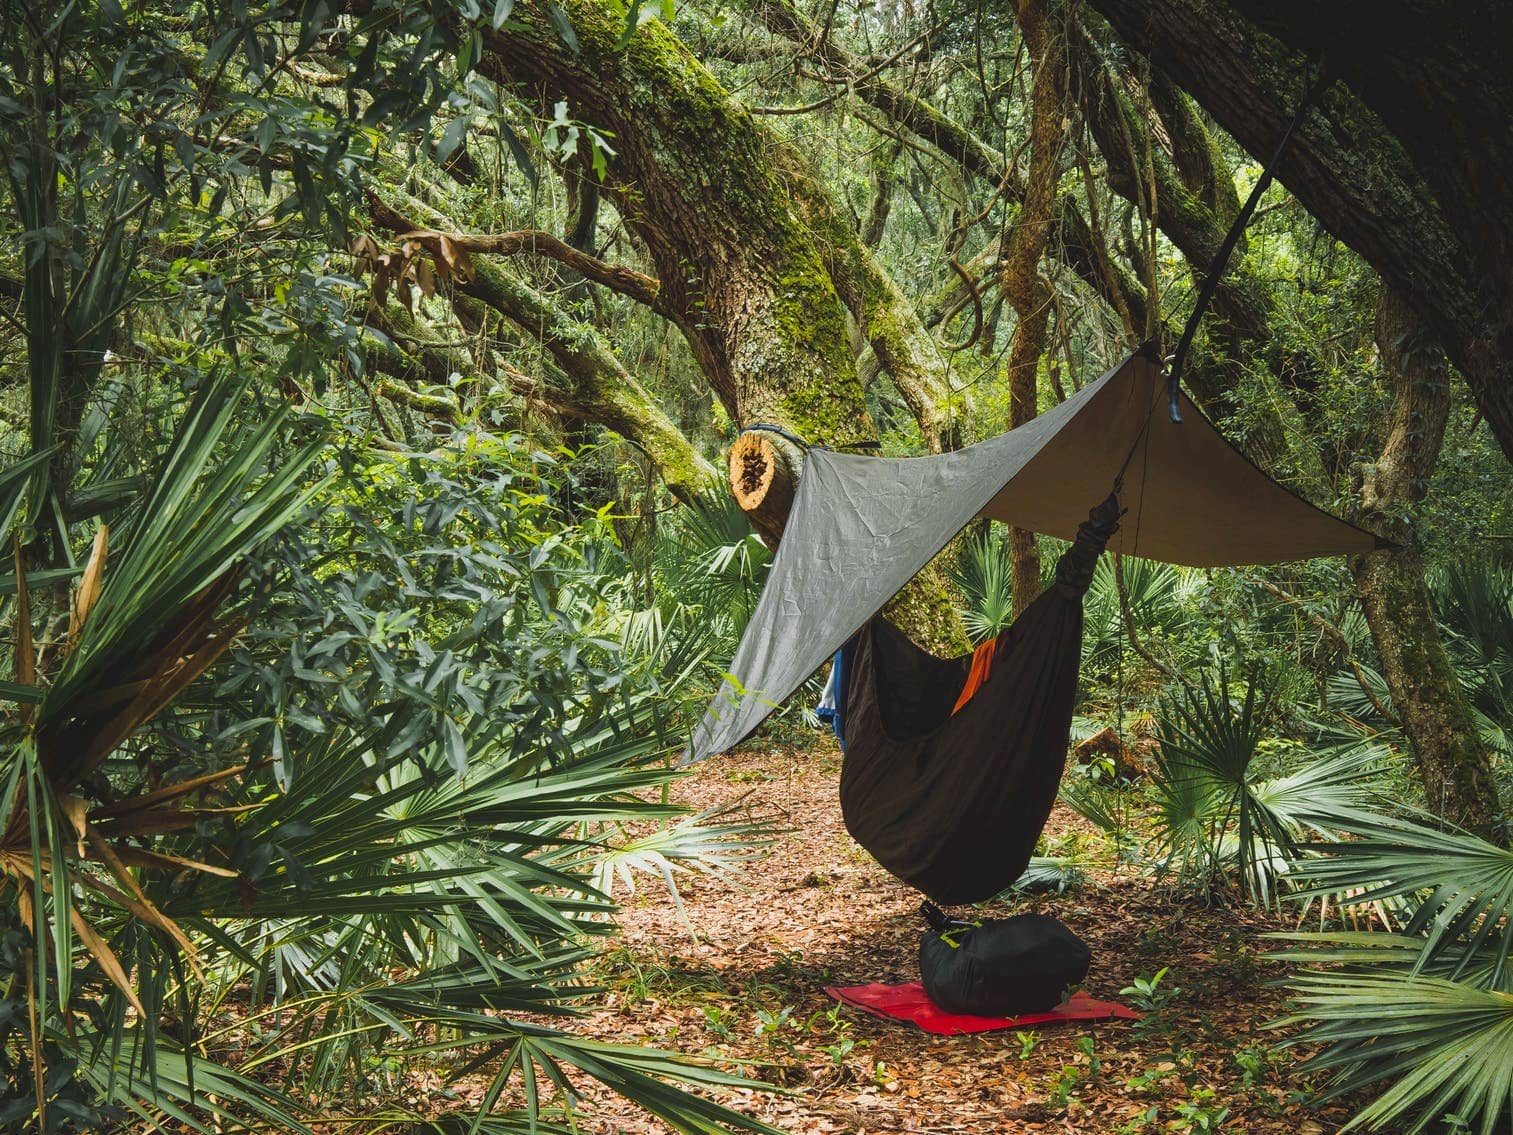 Camping style hammock hung in the jungle under a tarp with gear lying next to it.